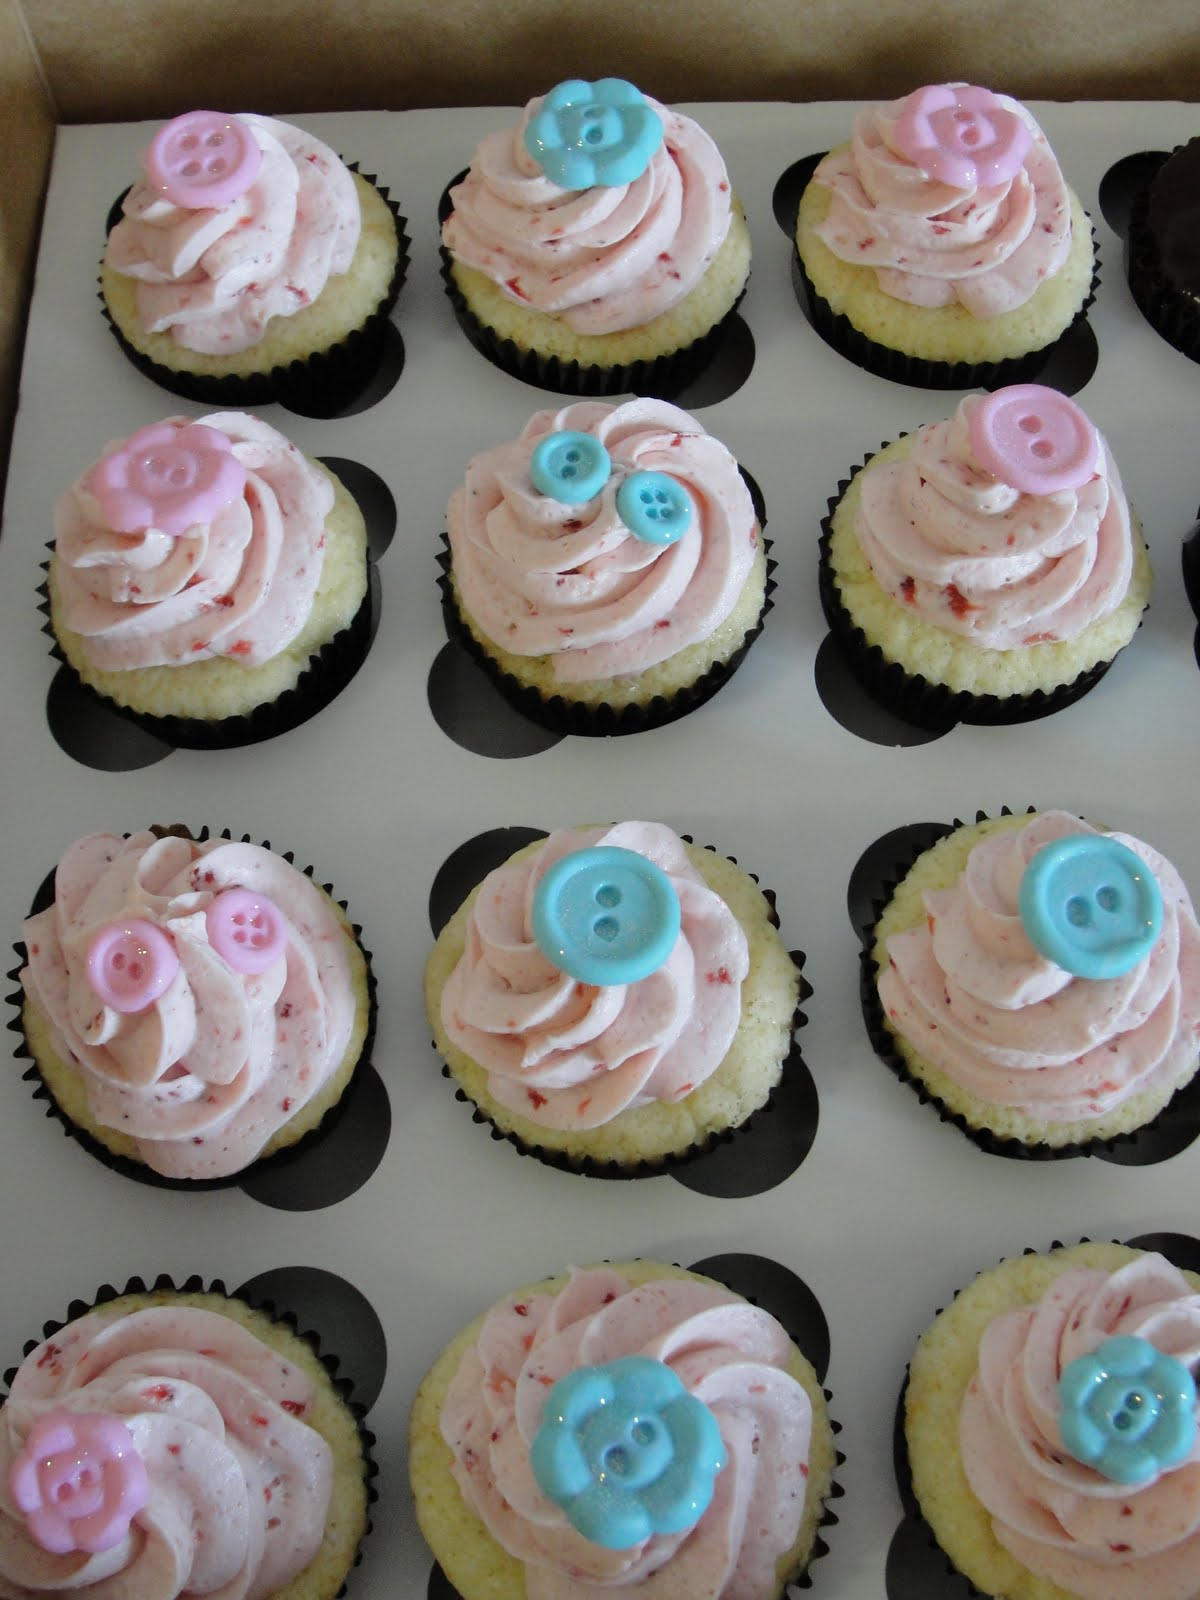 Oh, just put a cupcake in it....: Various Pink and Blue ...